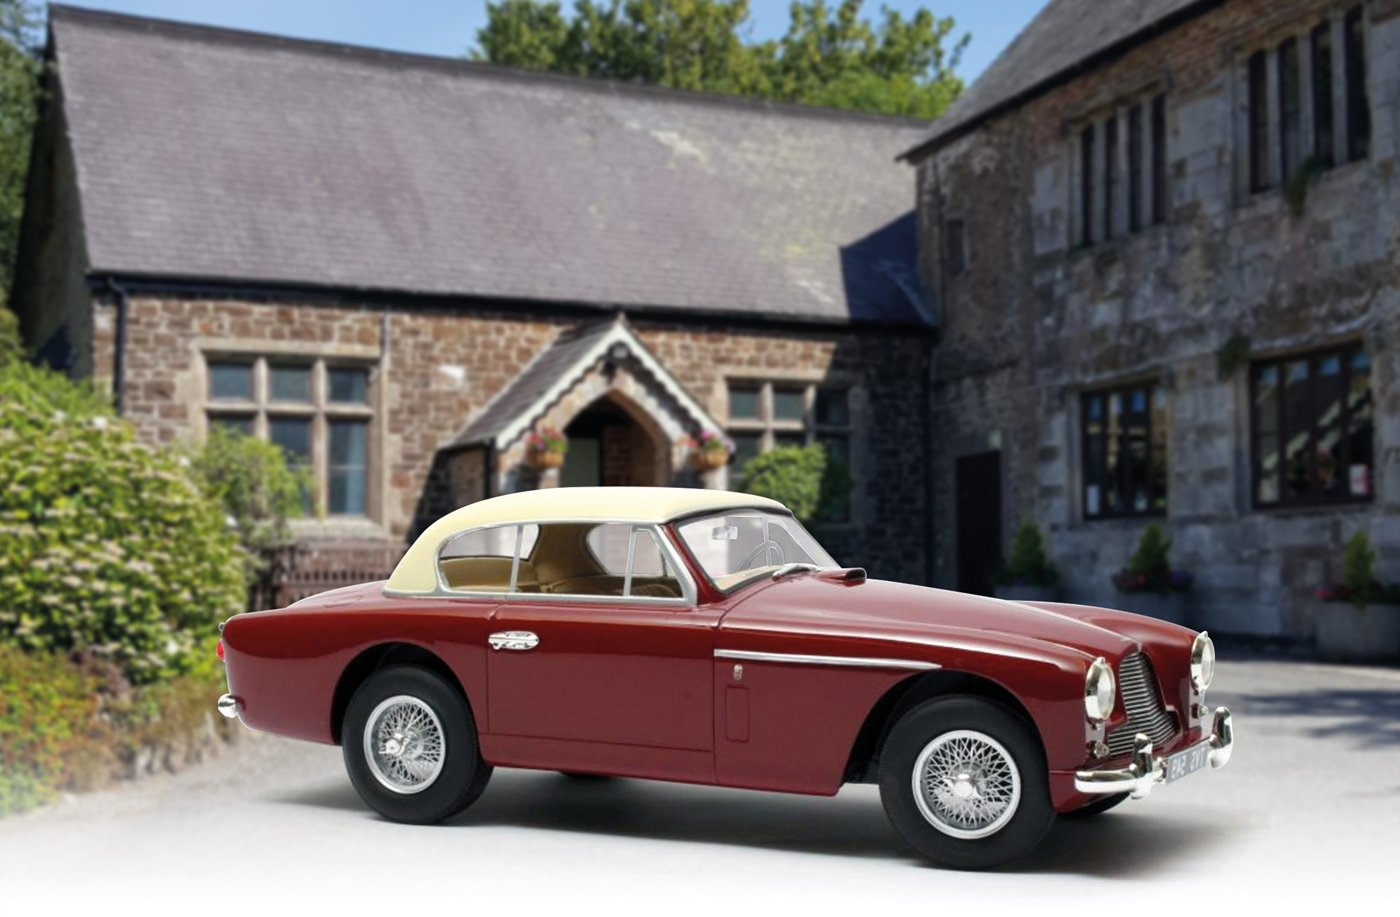 Cult 1:18 1955 Aston Martin DB2-4 Mk.II FHC Notchback diecast model car review